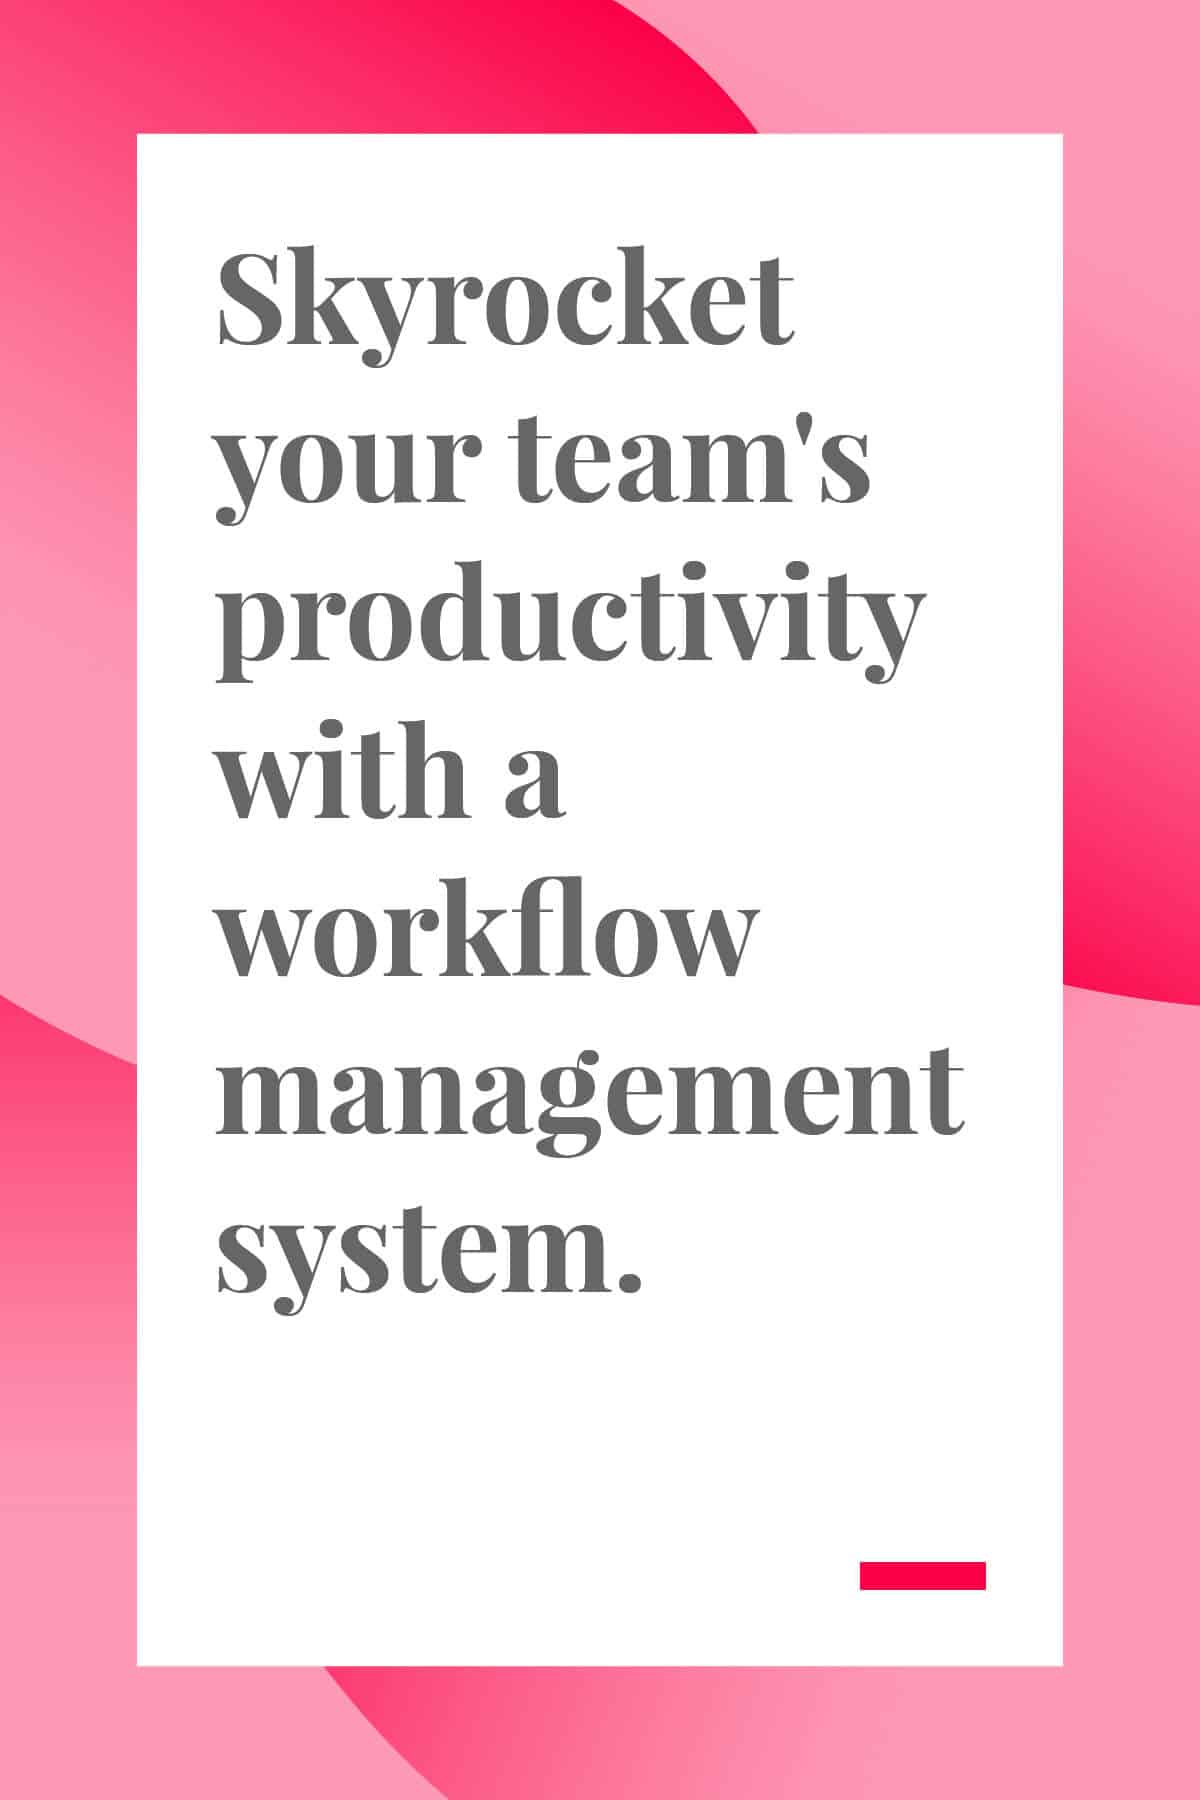 If you want to improve your team's productivity, you need a workflow management system. Find out why, plus get tips on creating the perfect workflow management system for your team. #projectmanager #teamlead #leadership #workflow